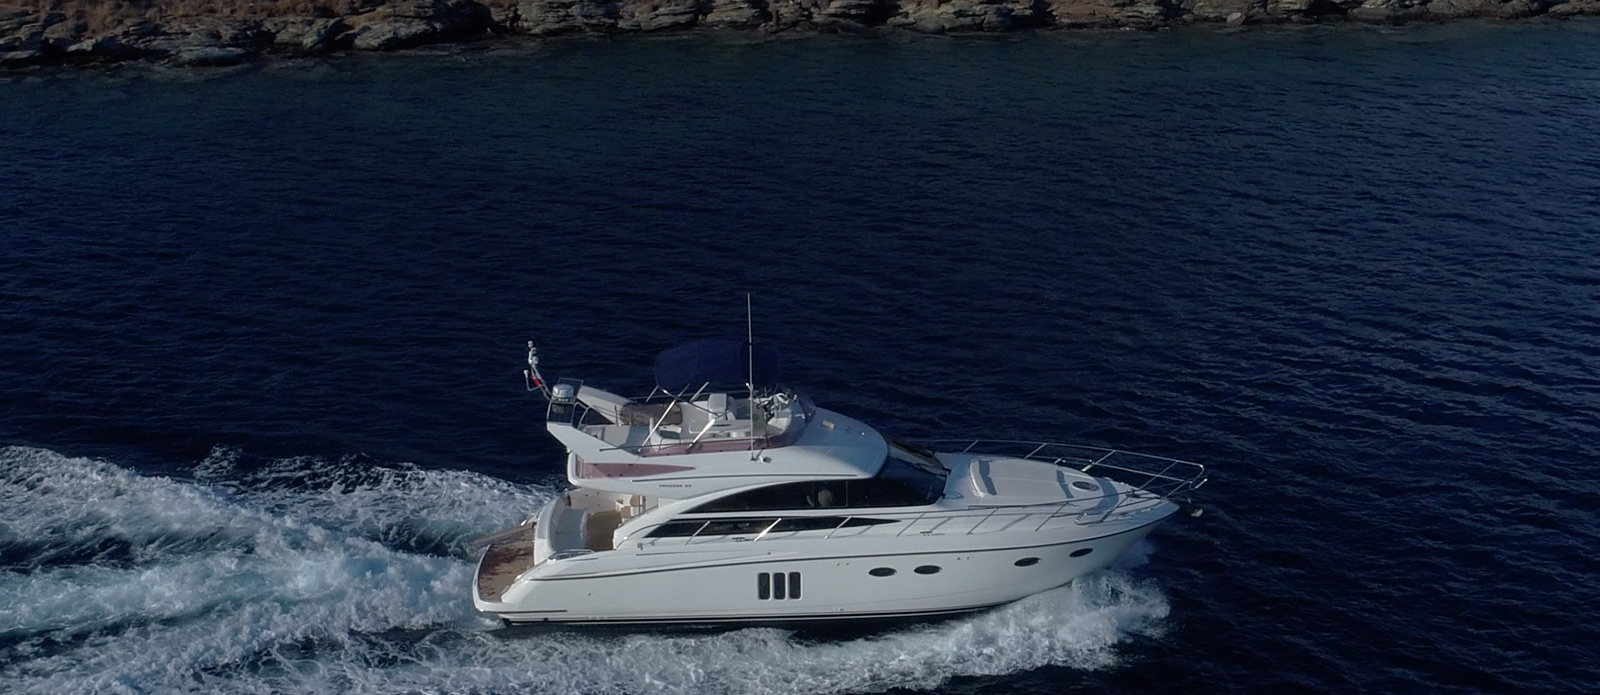 Princess-P54-Fly-Bridge-Motor-Yacht-Lavimar-Cruising-Past-Rocks